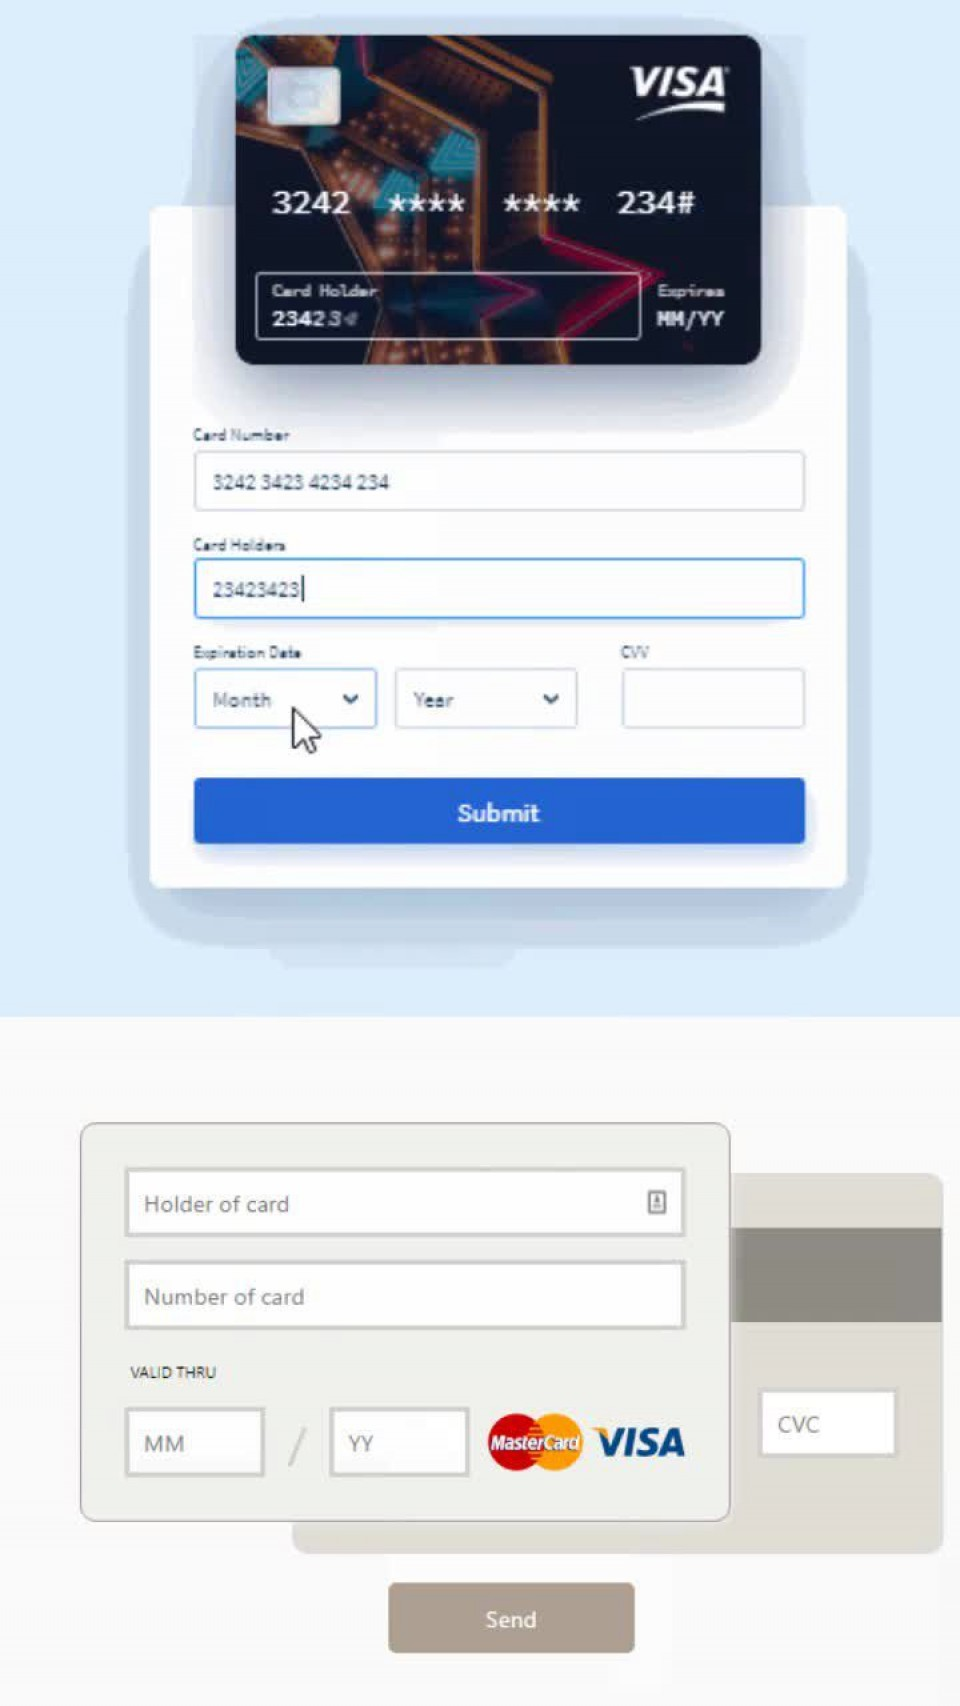 008 Awful Credit Card Form Template Html Example  Payment Cs960